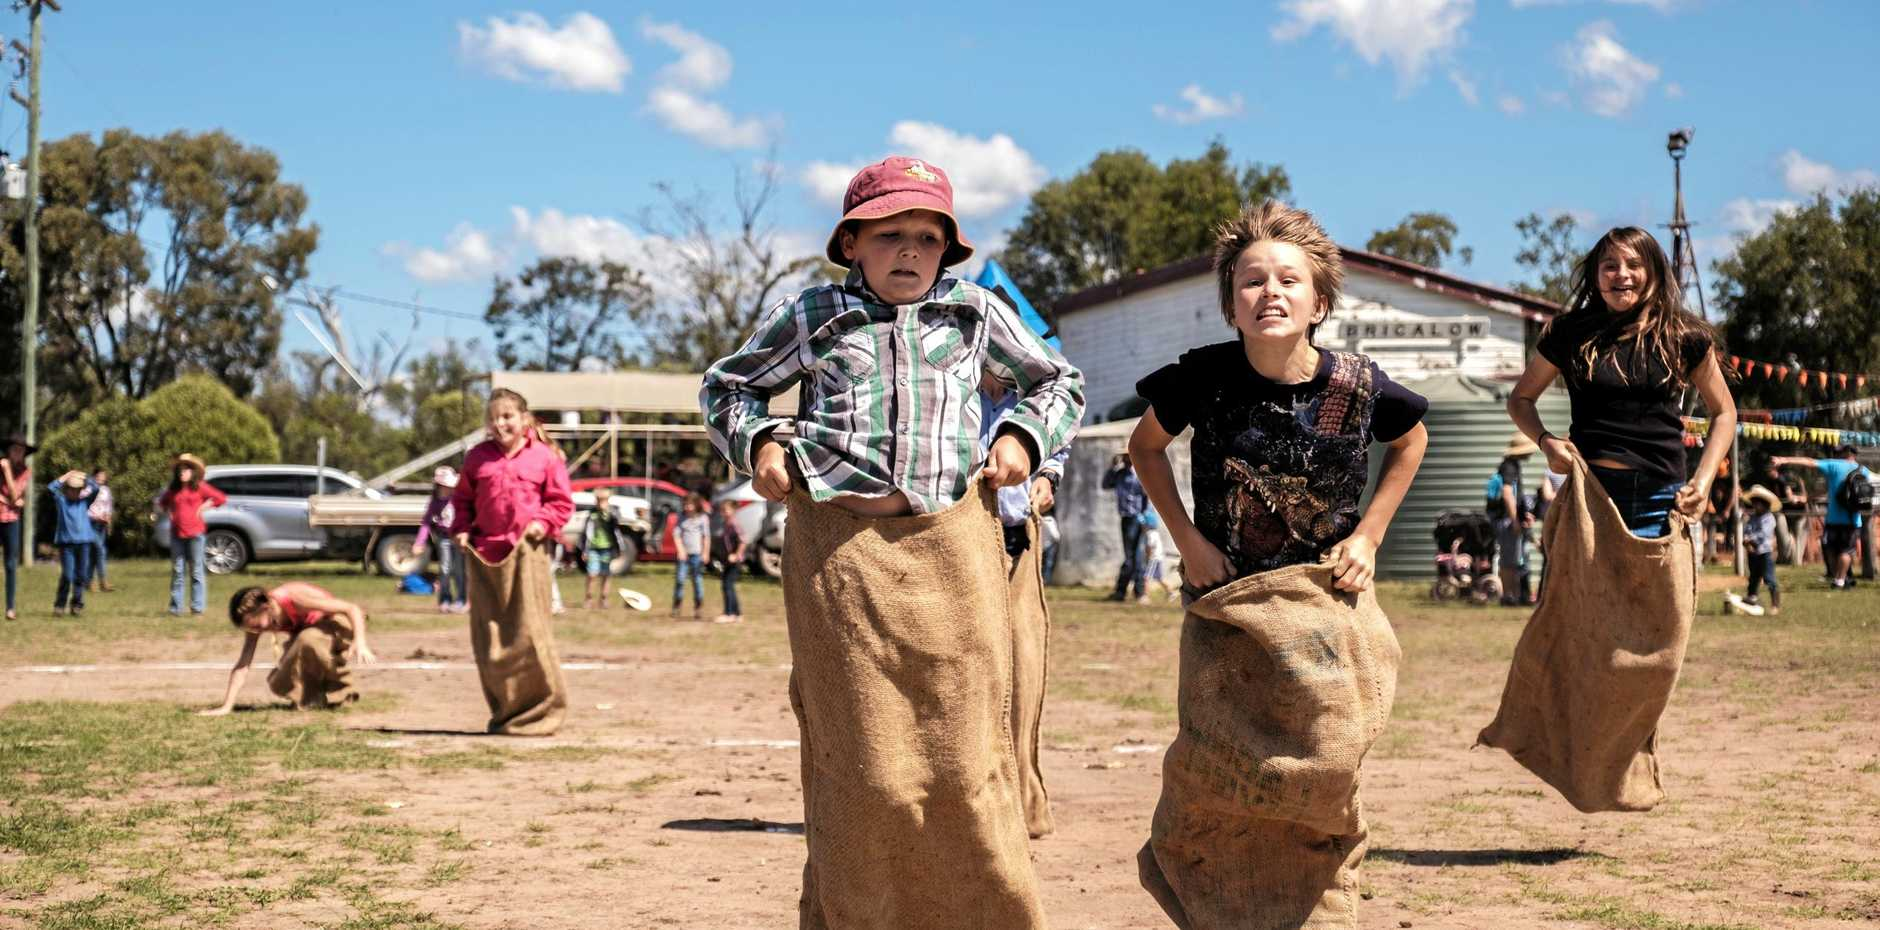 FAMILY FUN: Attendees have a fun time racing in the potato sack race at the Brigalow Bush Carnival.